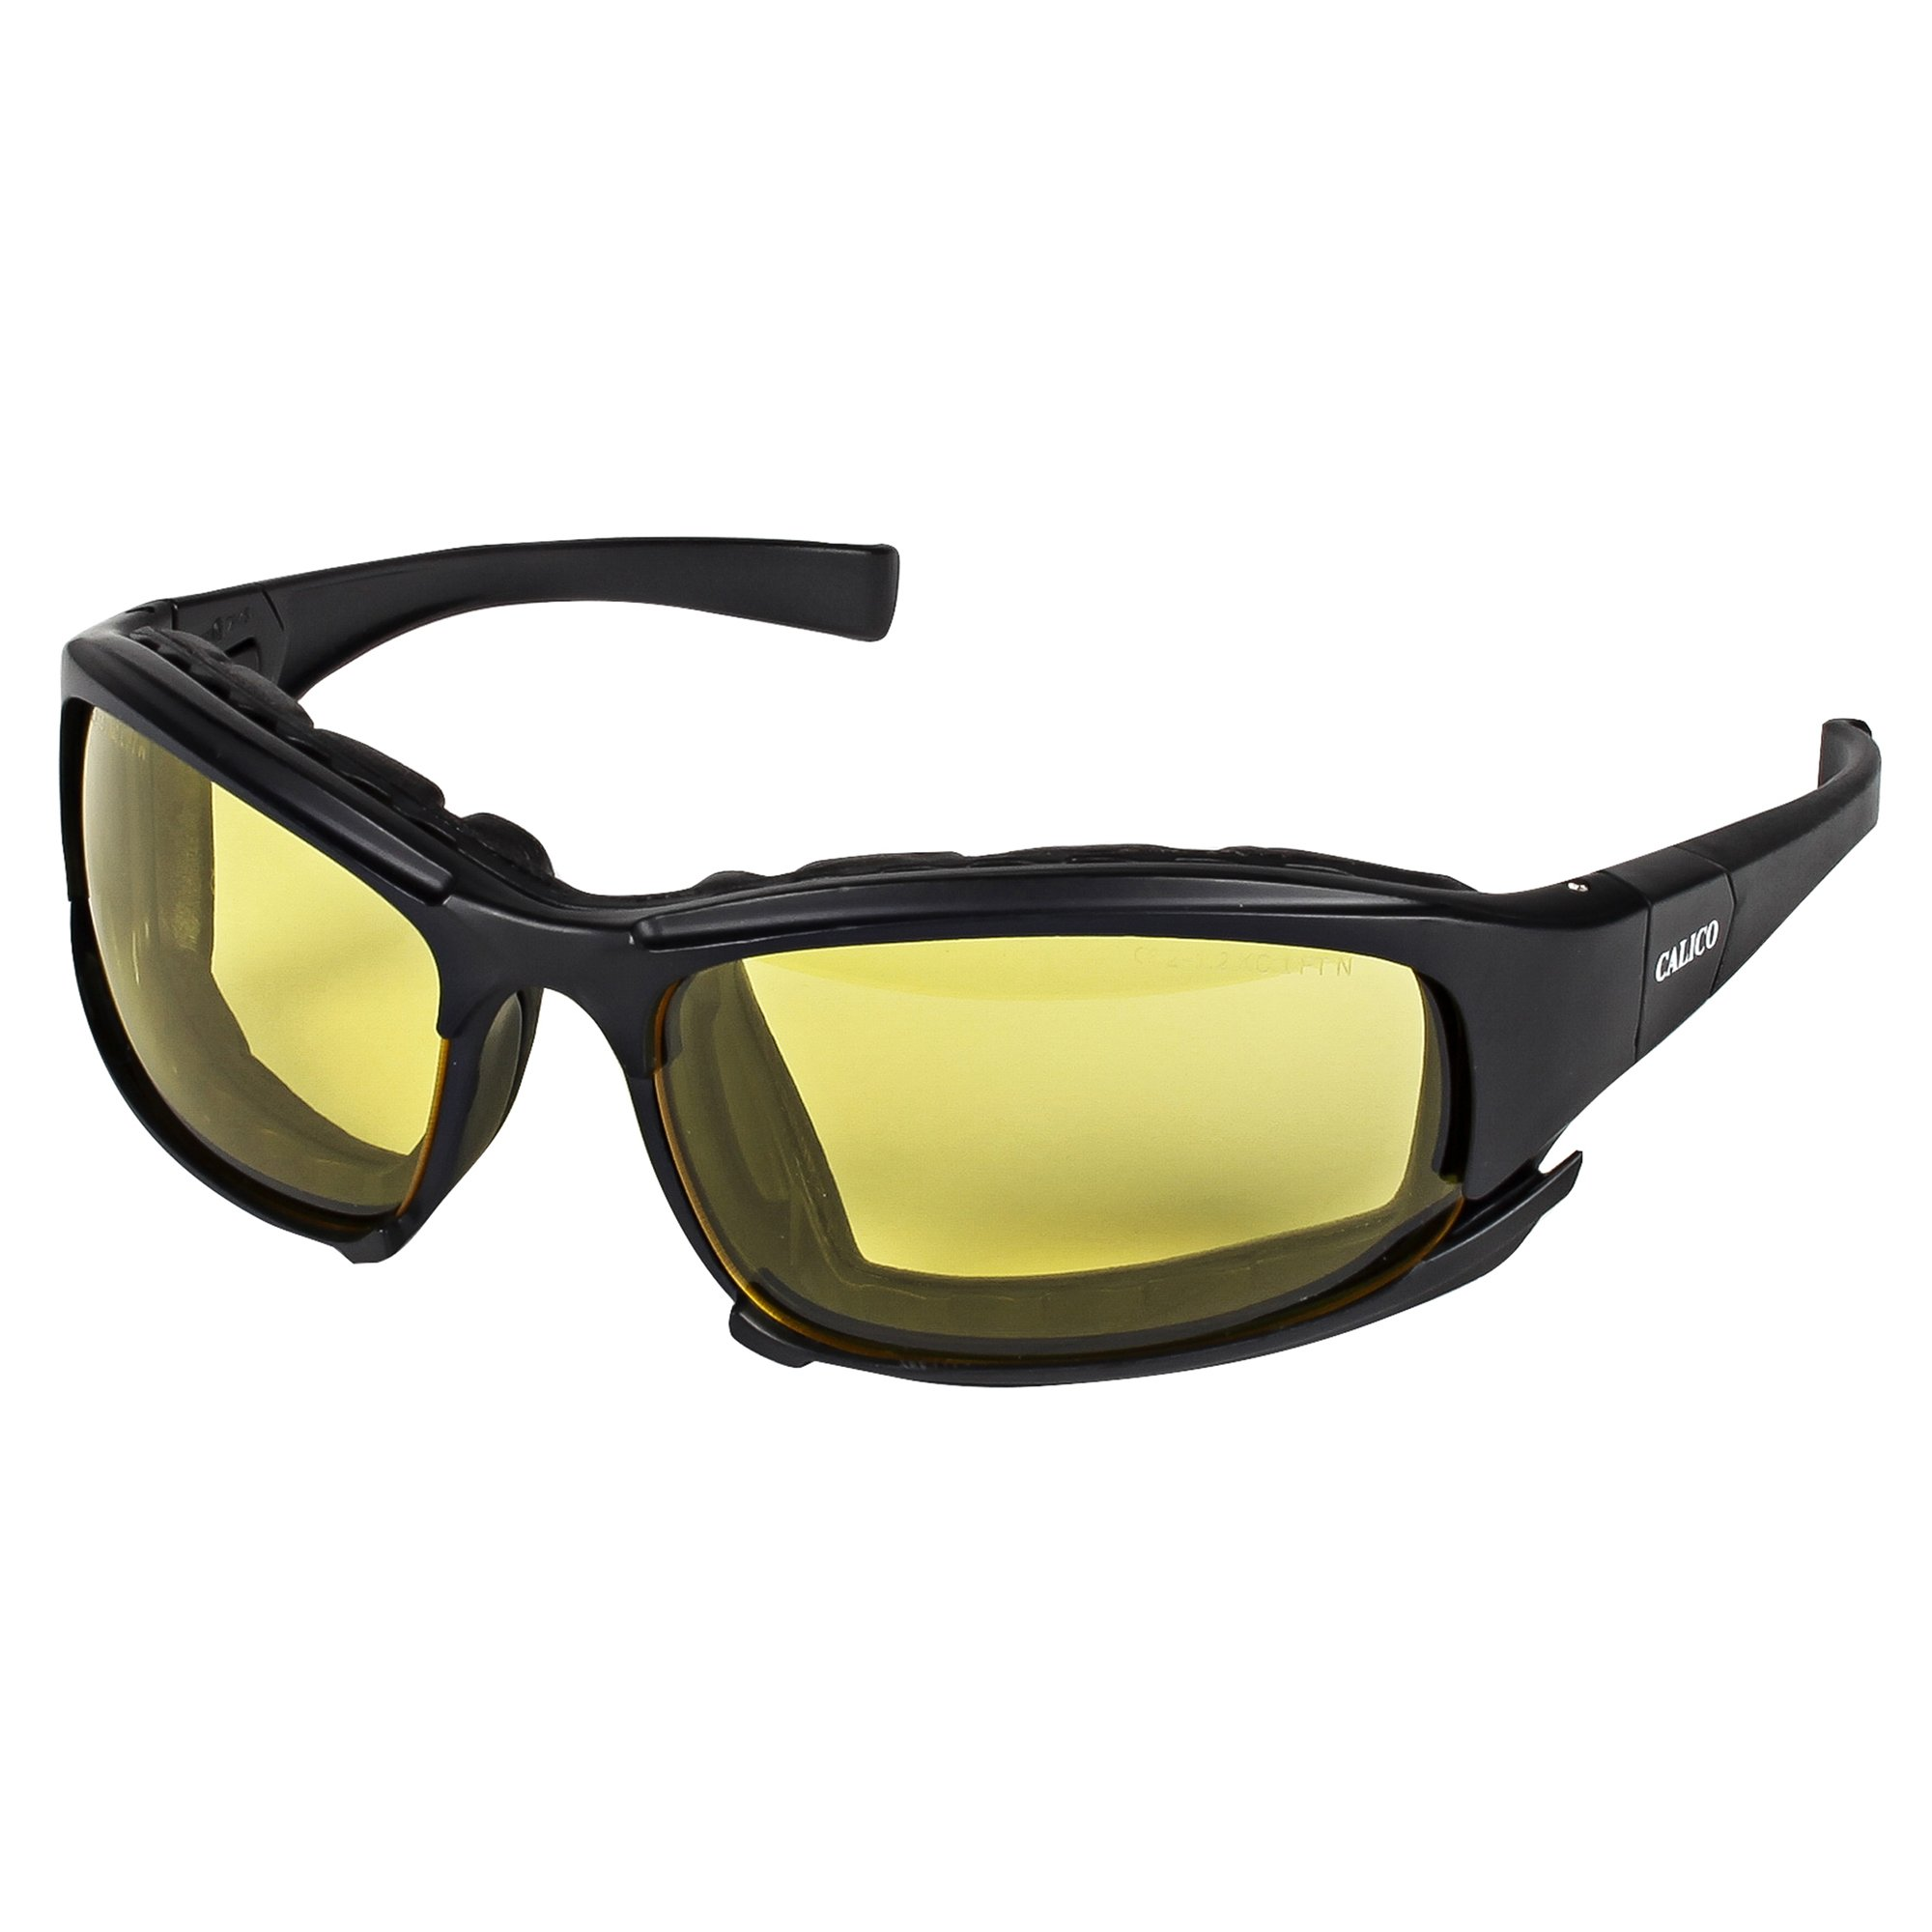 Jackson Safety Calico Safety Eyewear V50 (25674), Amber Anti-Fog Lens, Interchangeable Temple / Head Strap by Jackson Safety